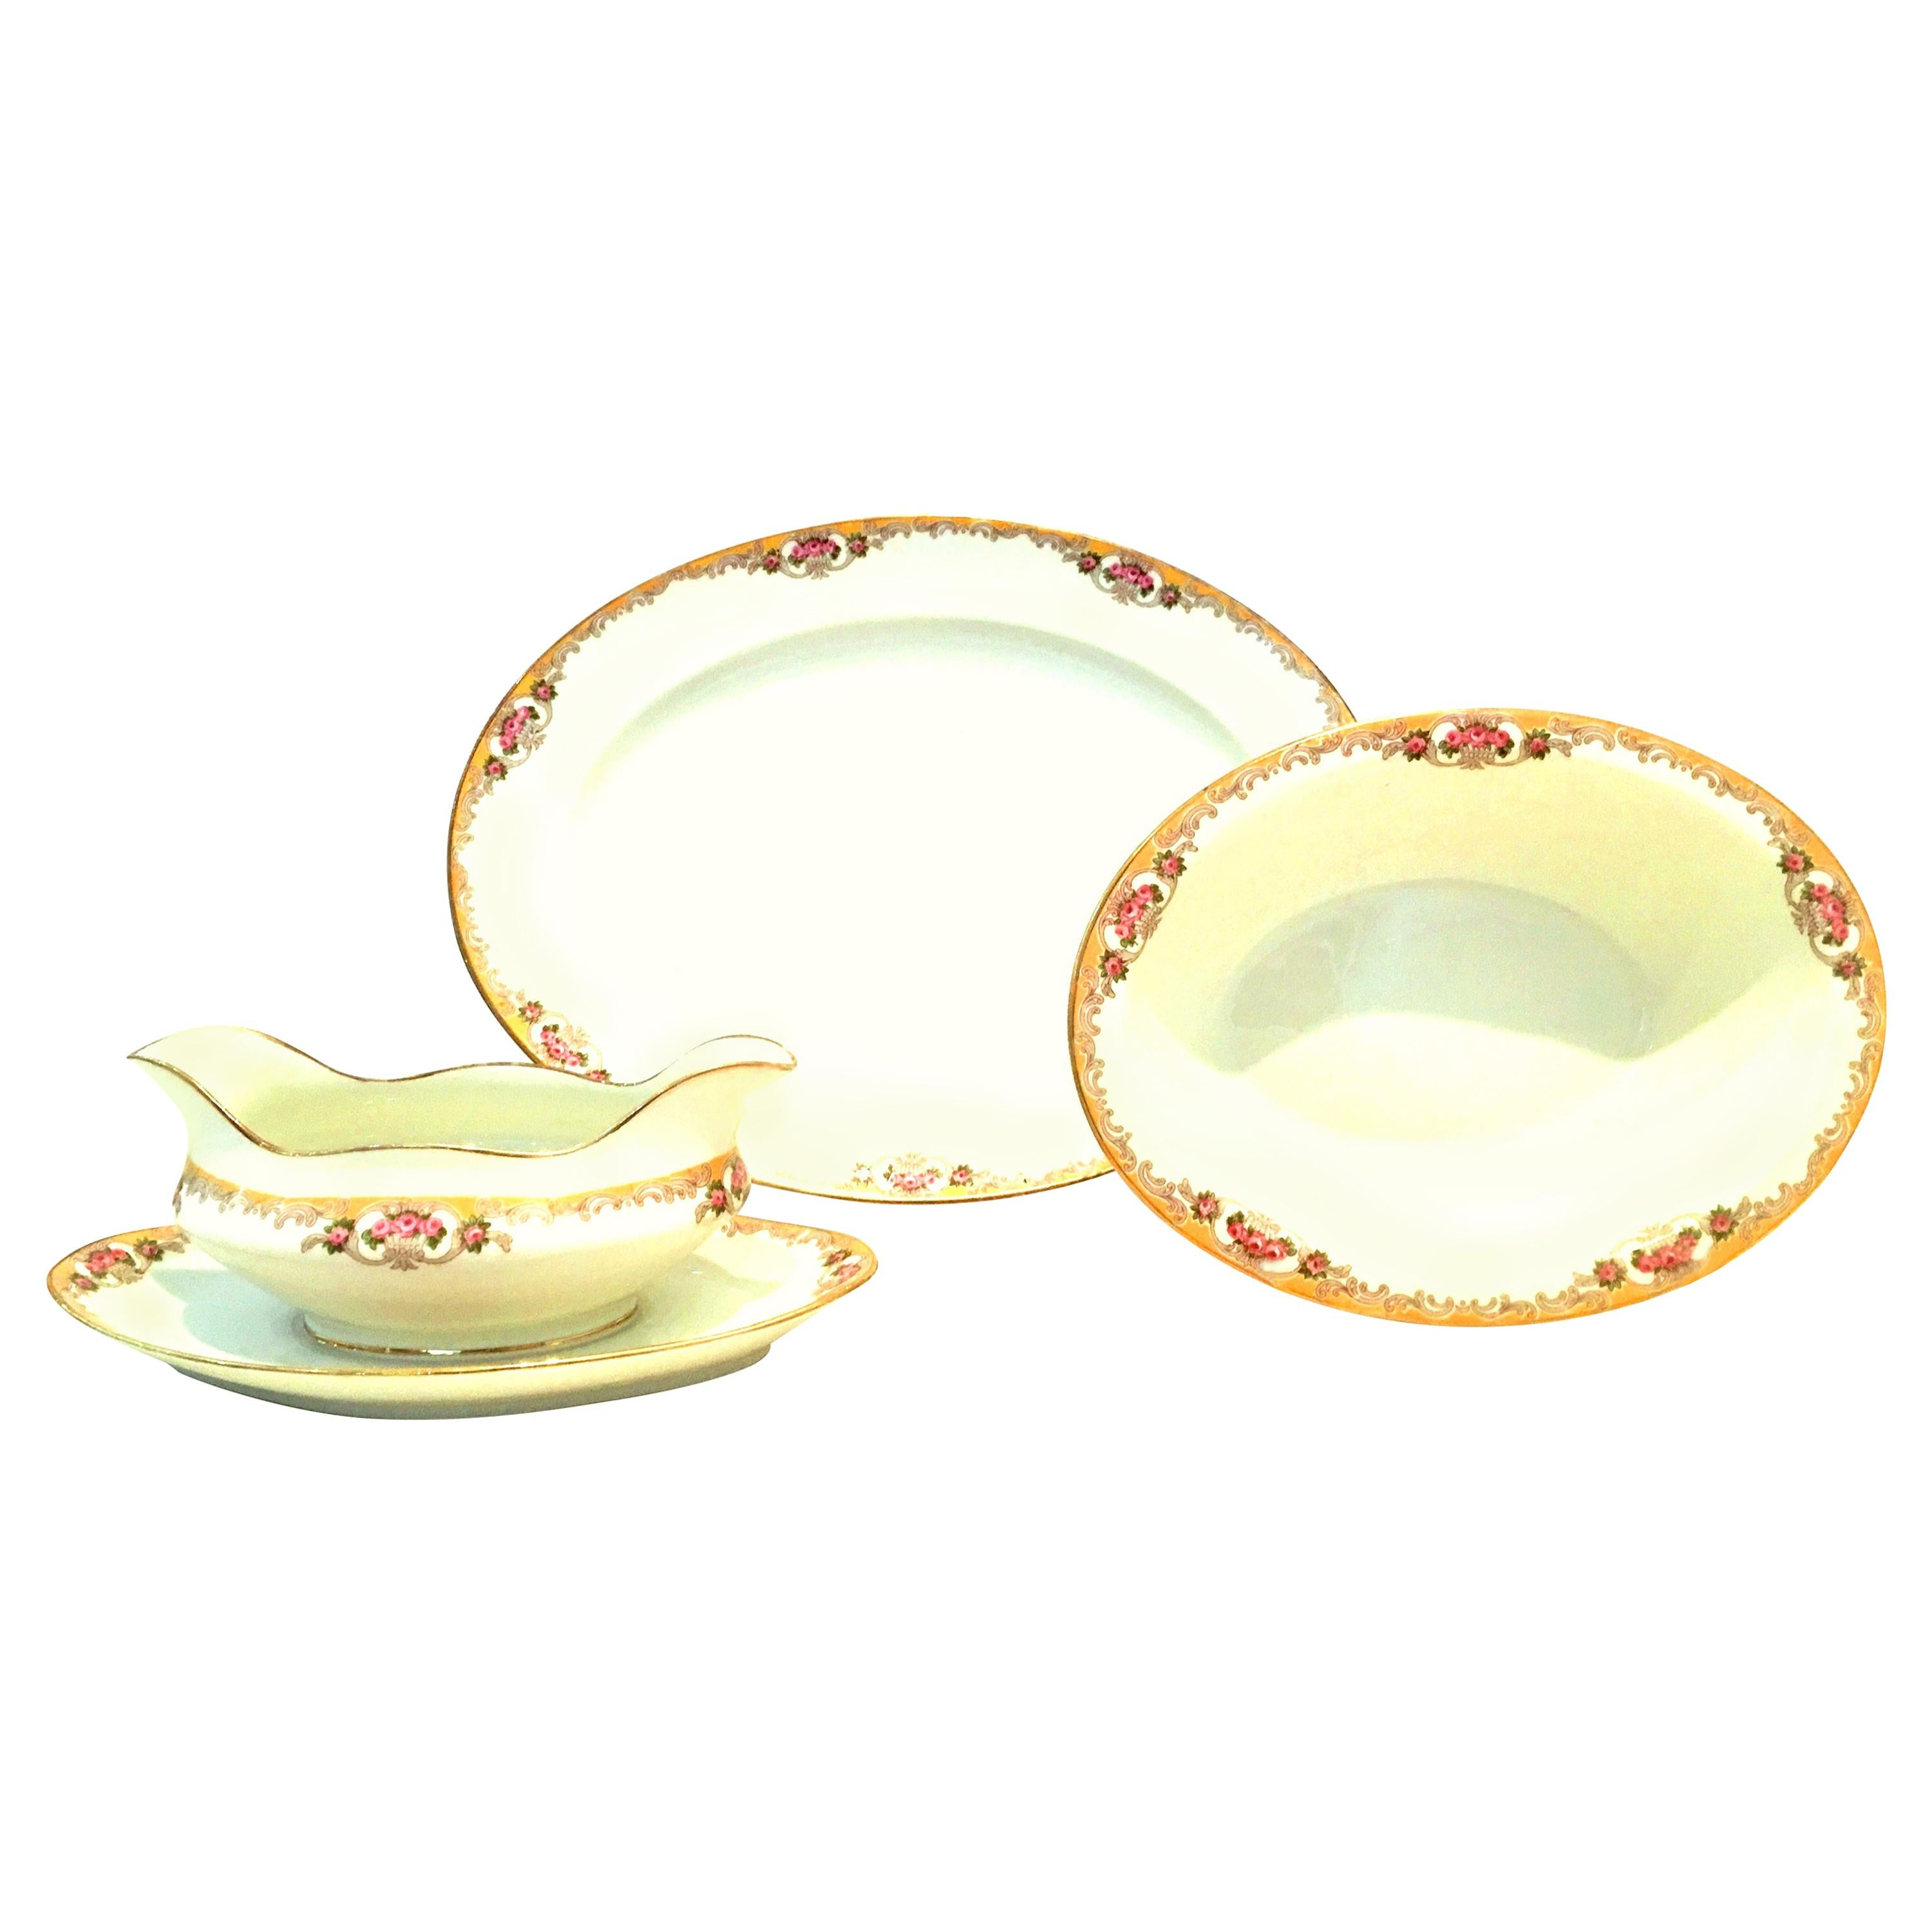 20th Century Limoges France Porcelain Serving Piece Set of 3 by M. Redon